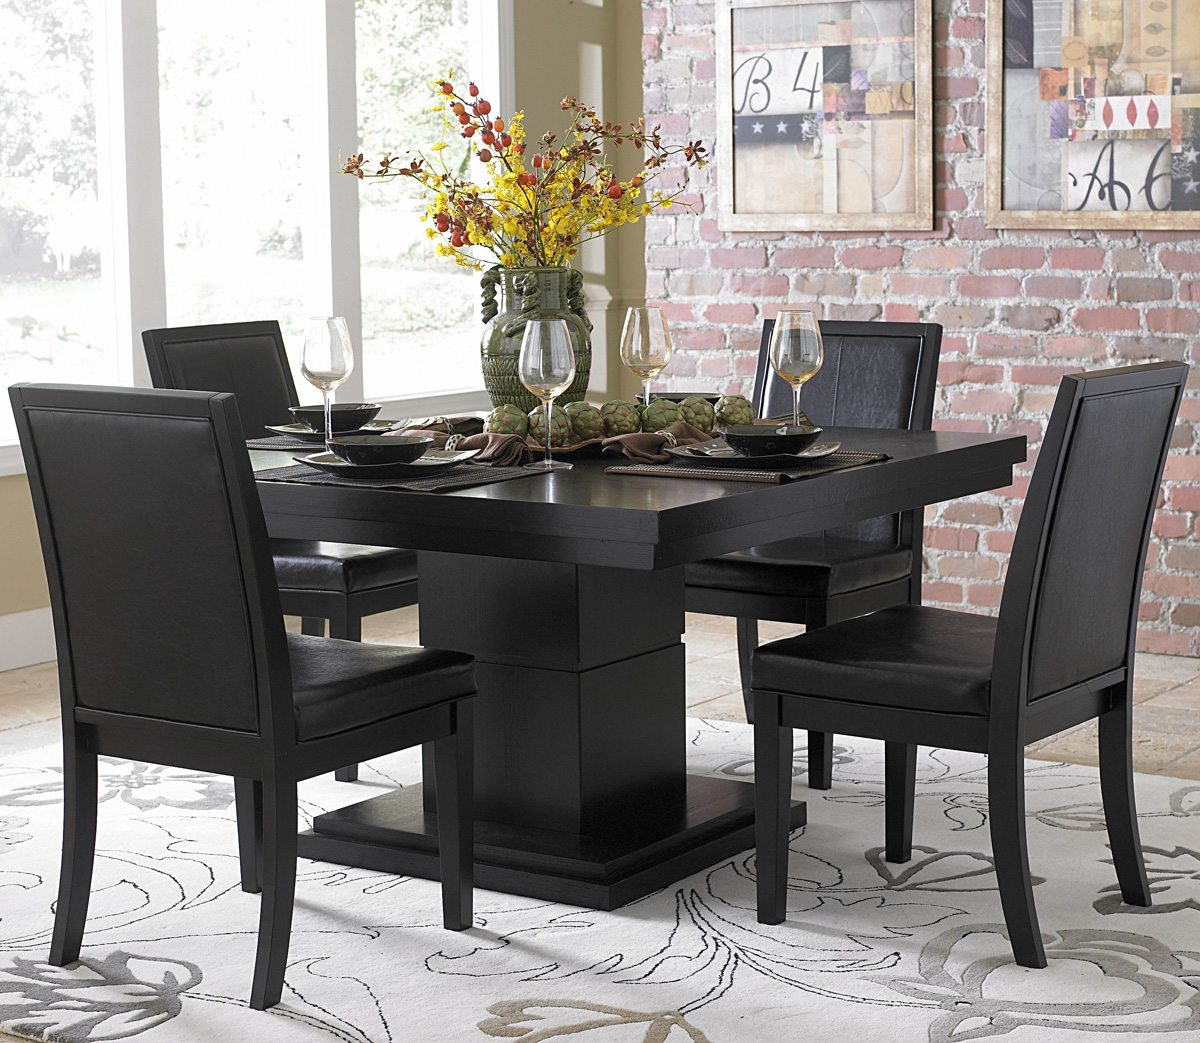 Homelegance Cicero Square Pedestal Dining Table in Black - Walmart